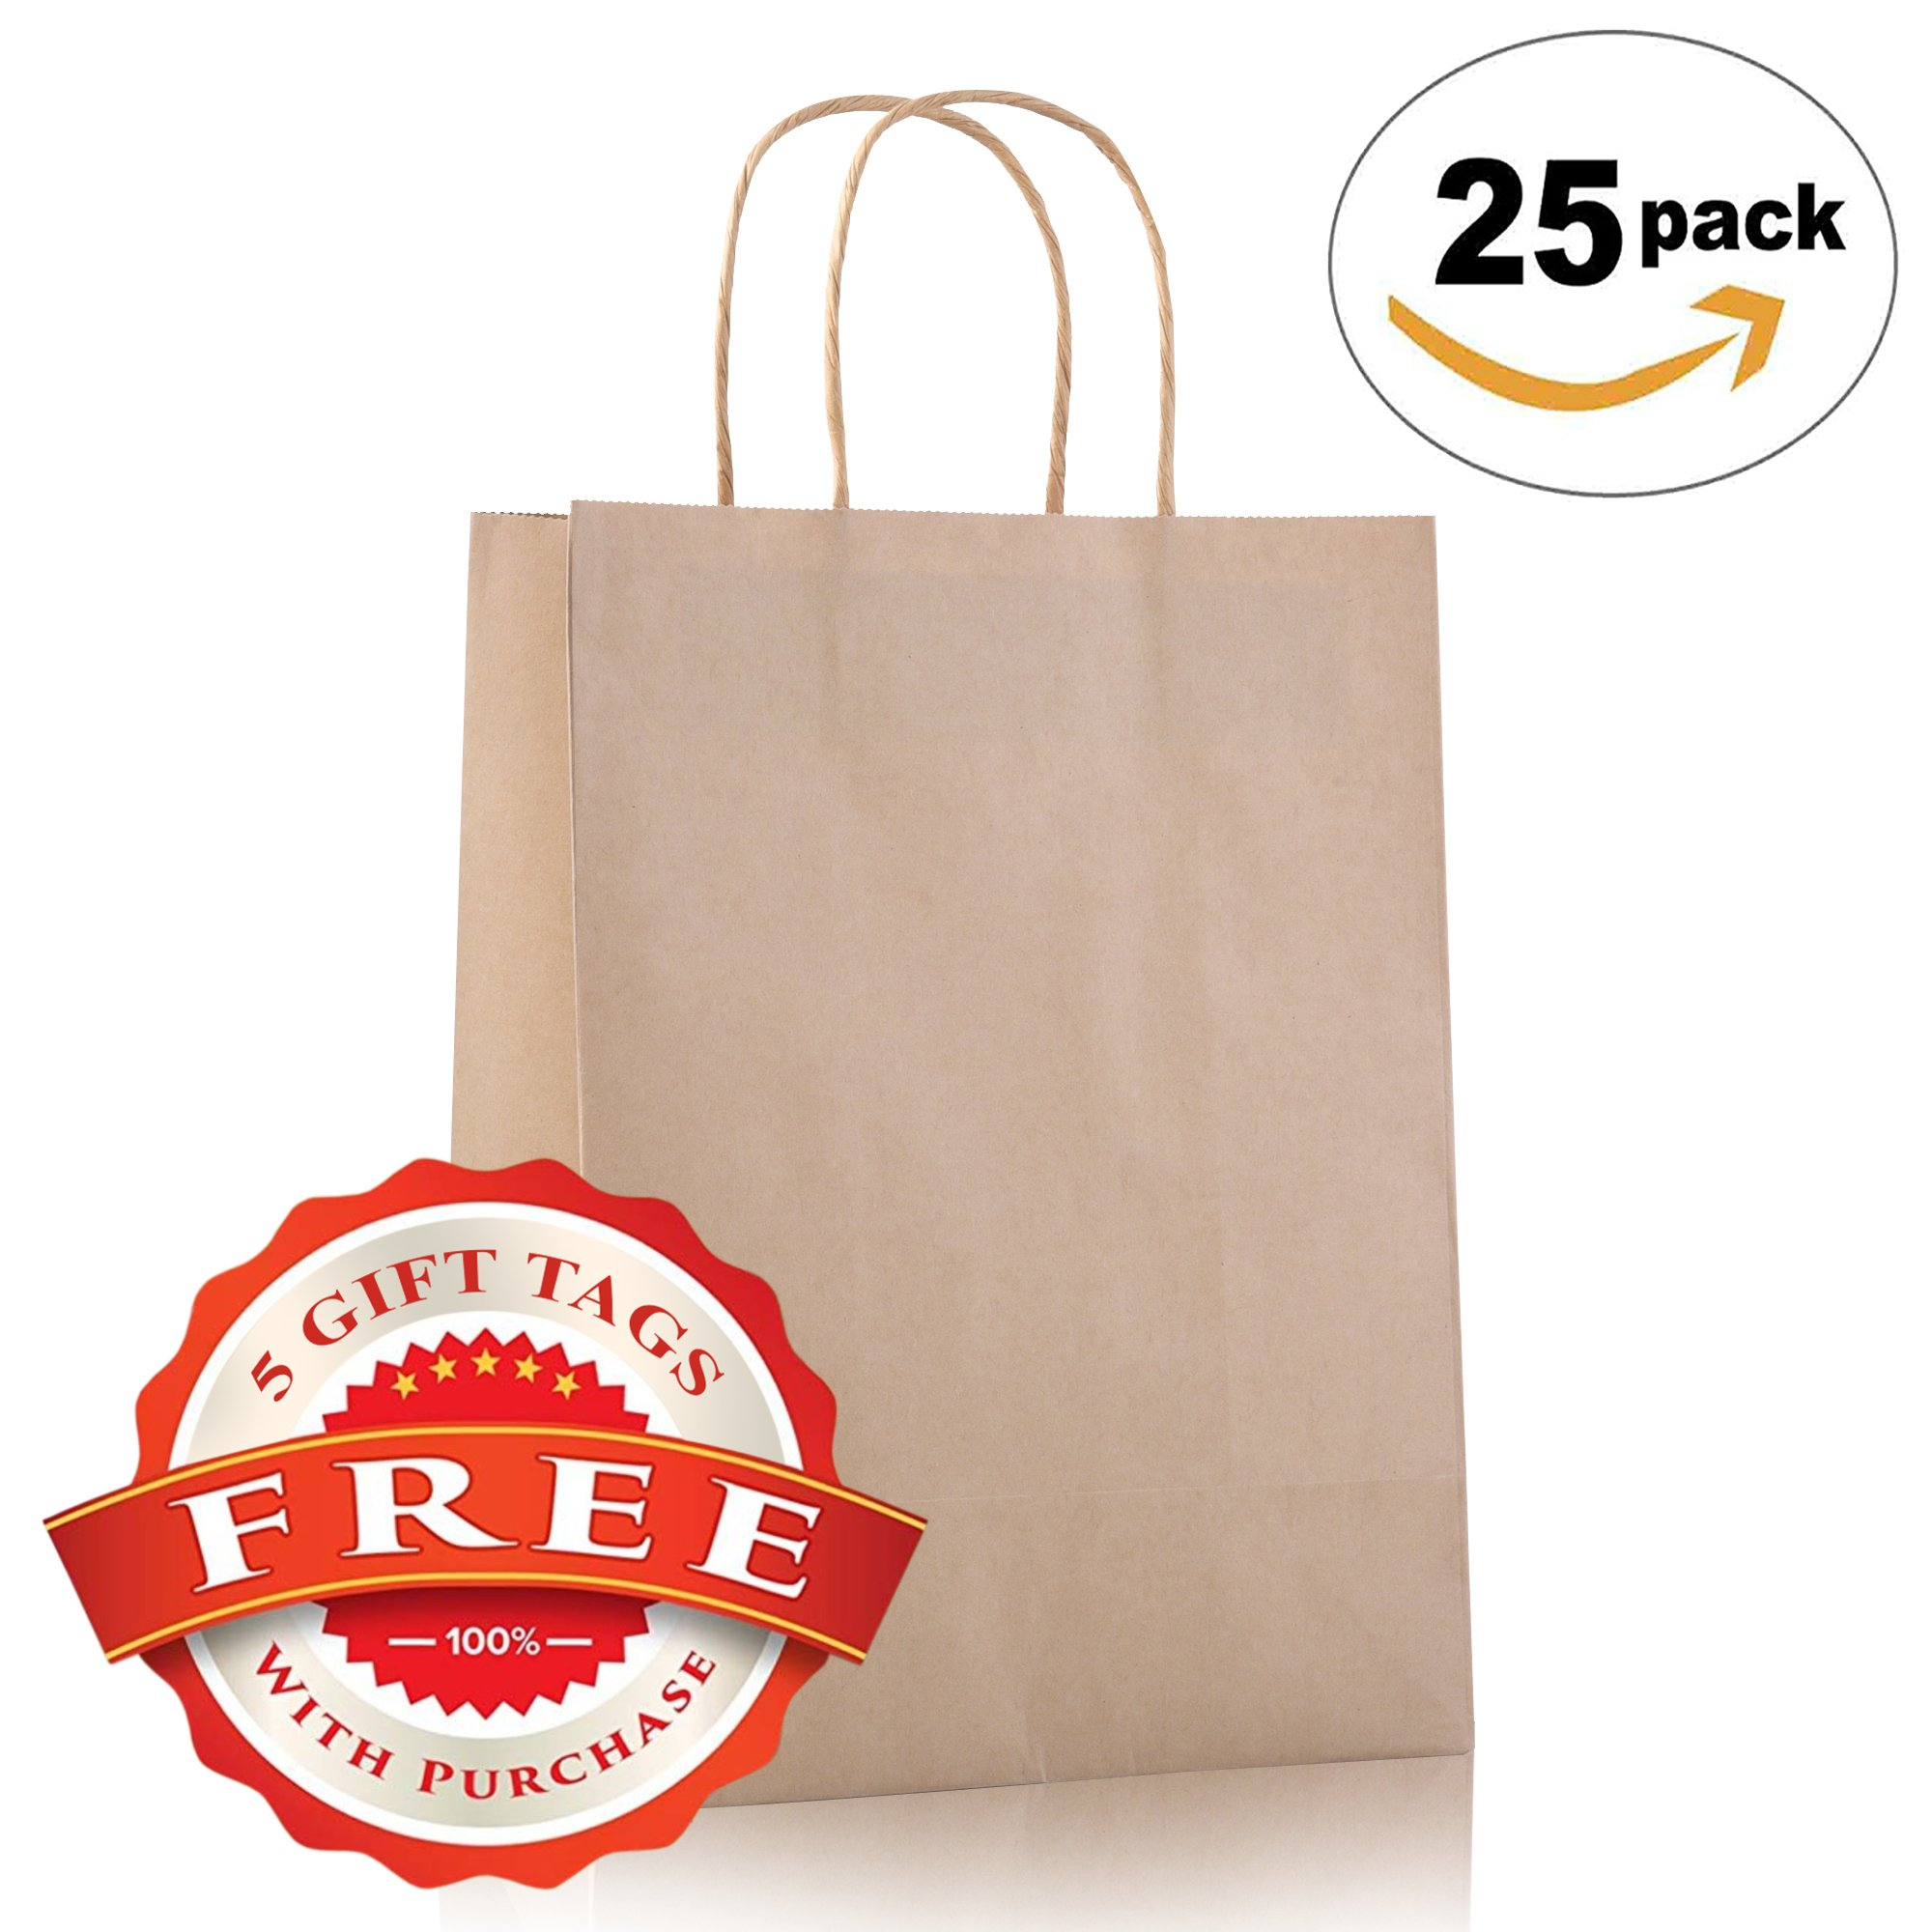 8''x4.75''x10.5'' 25 PCS – Brown Kraft Paper Bags for Bulk Shopping Party Merchandise Retail Craft Reusable Foldable Bags, Brown Natural Bag, Cub, Gift Bags with Handles and Good Handle Quality